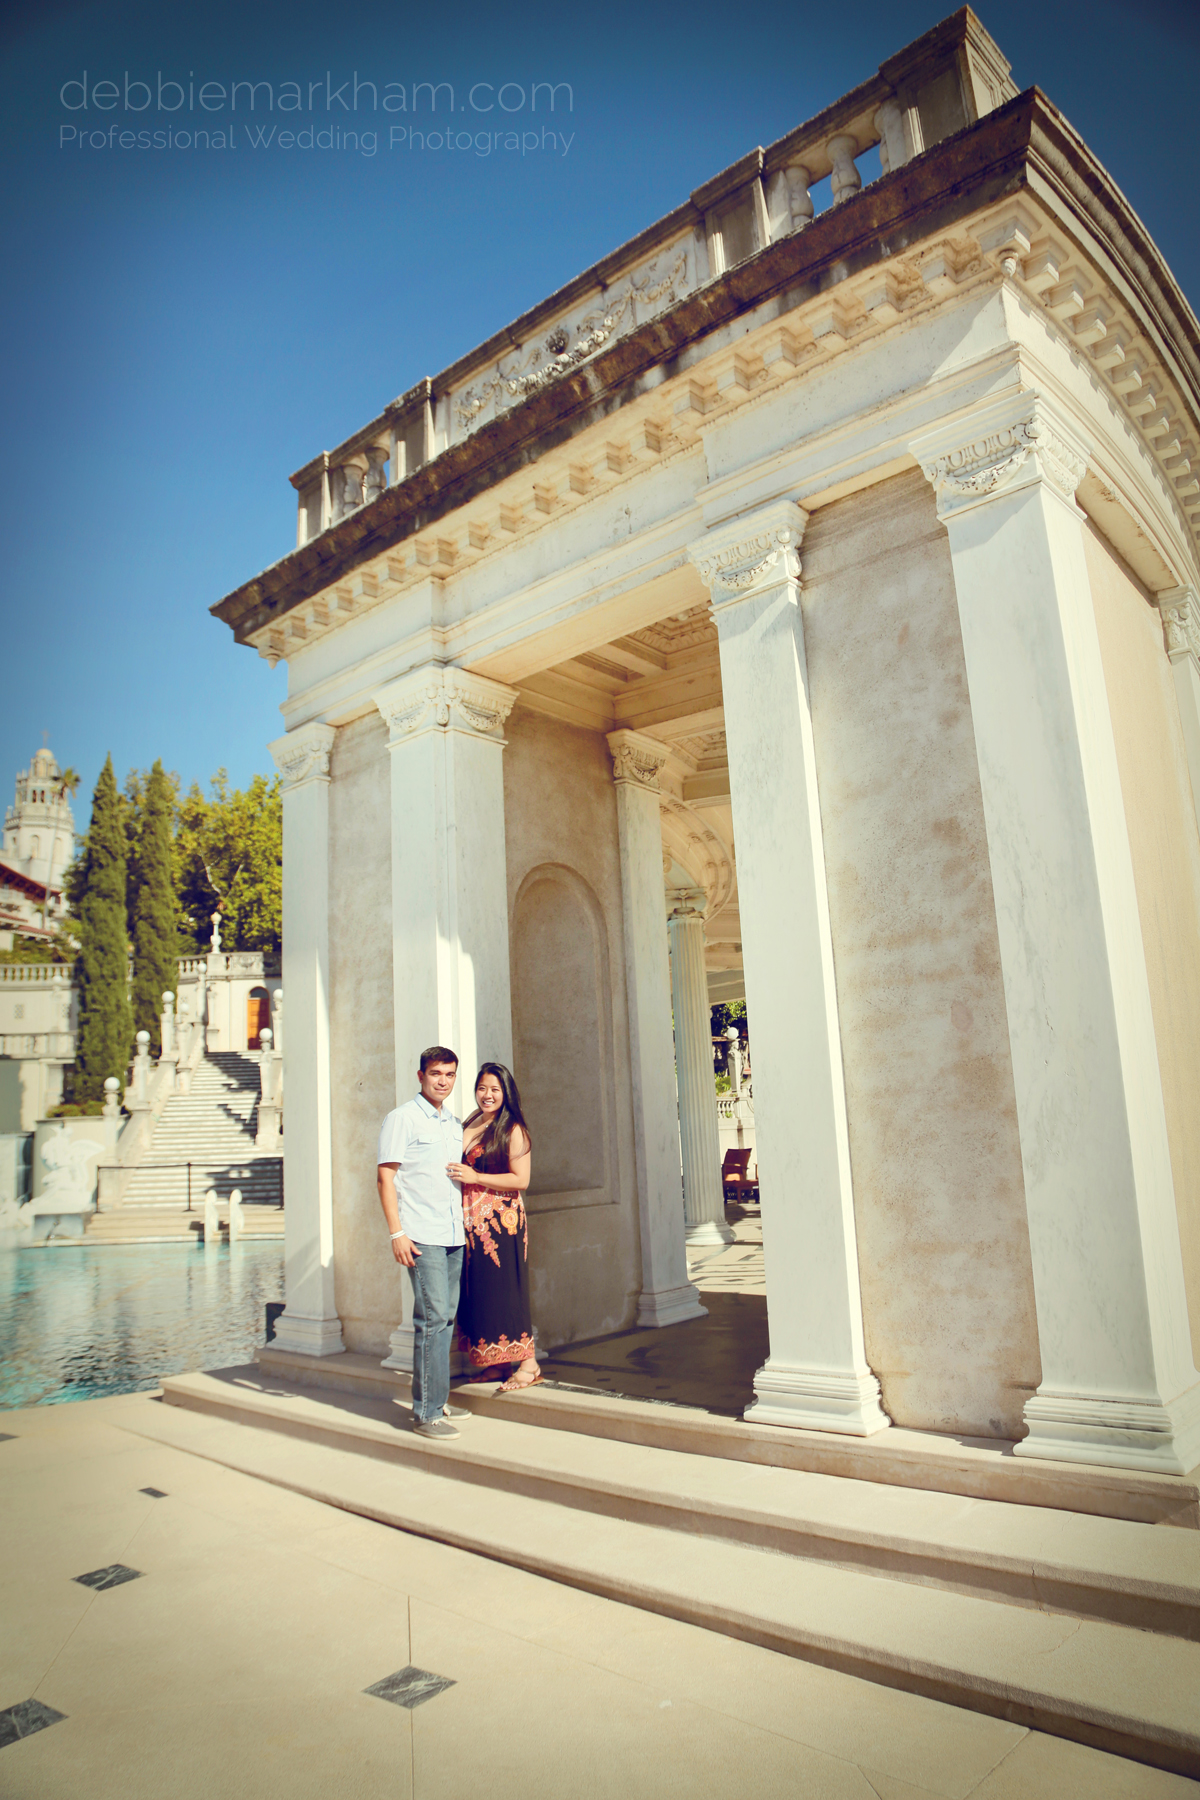 Debbie Markham Surprise Engagement Photography at Hearst Castle 319B1470retro warm